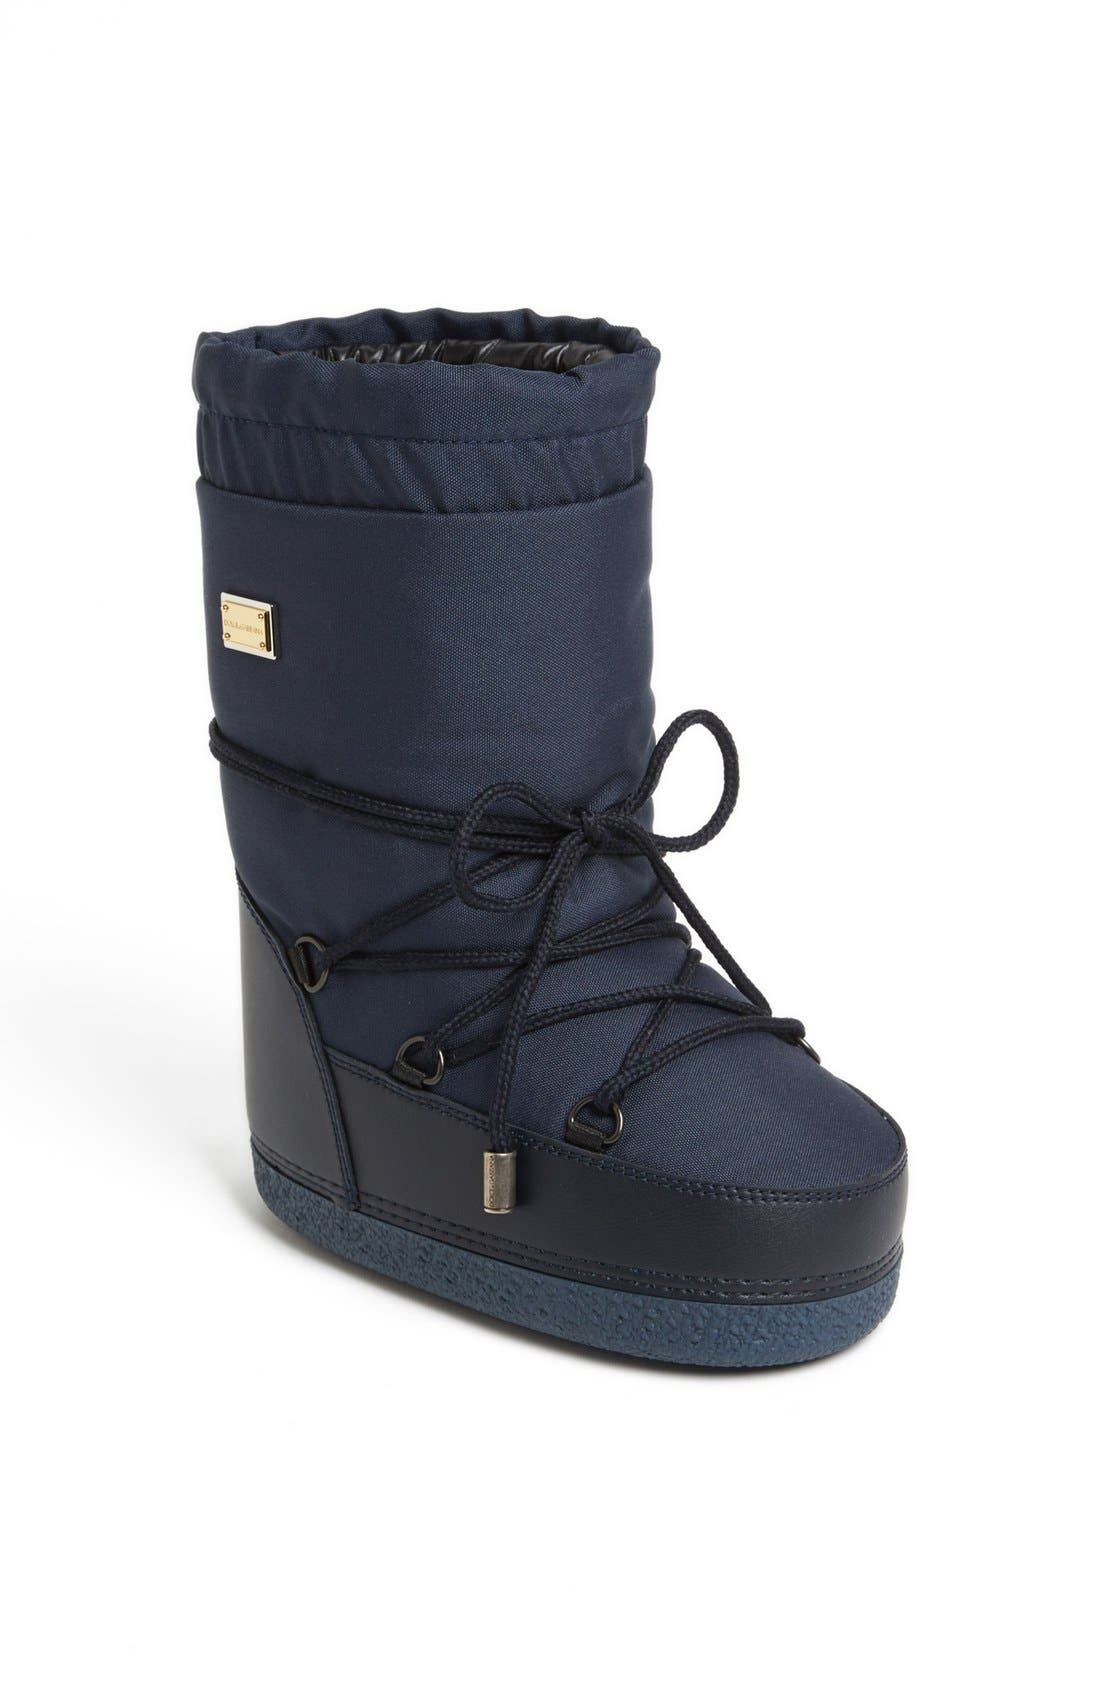 Main Image - Dolce&Gabbana Snow Boots (Toddler, Little Kid & Big Kid)